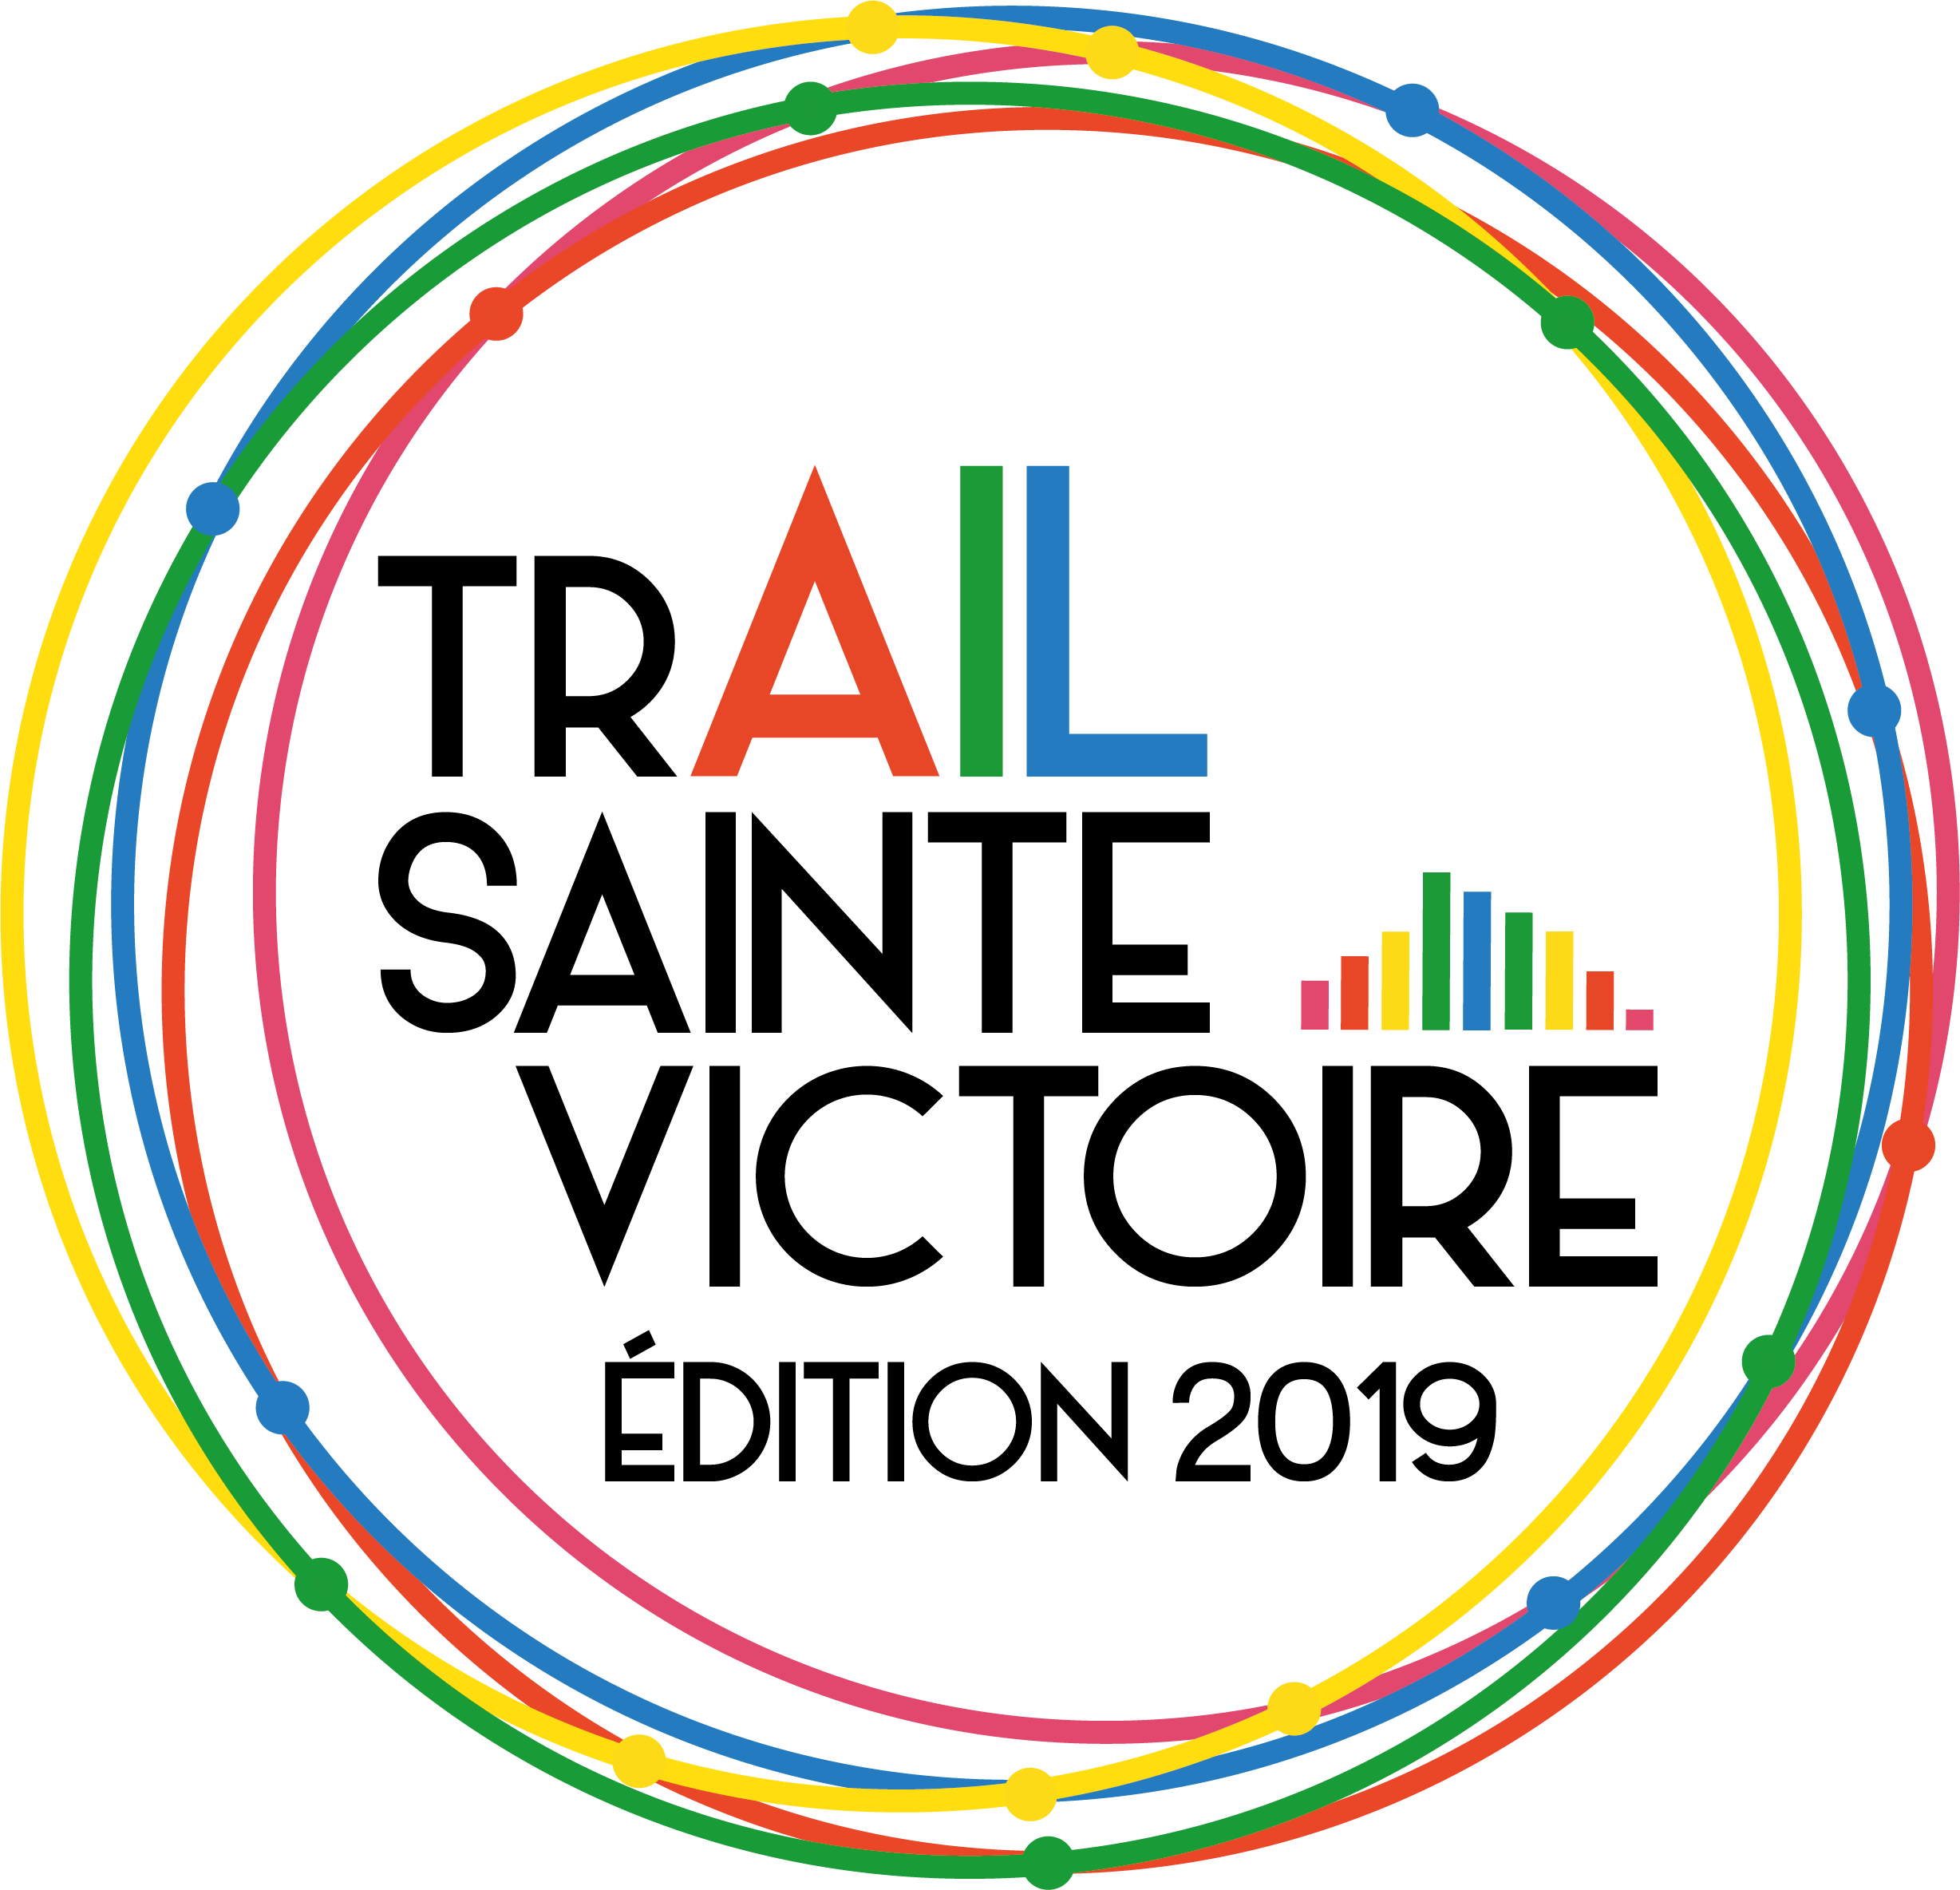 TSV2019: INVITATION DES ELITES